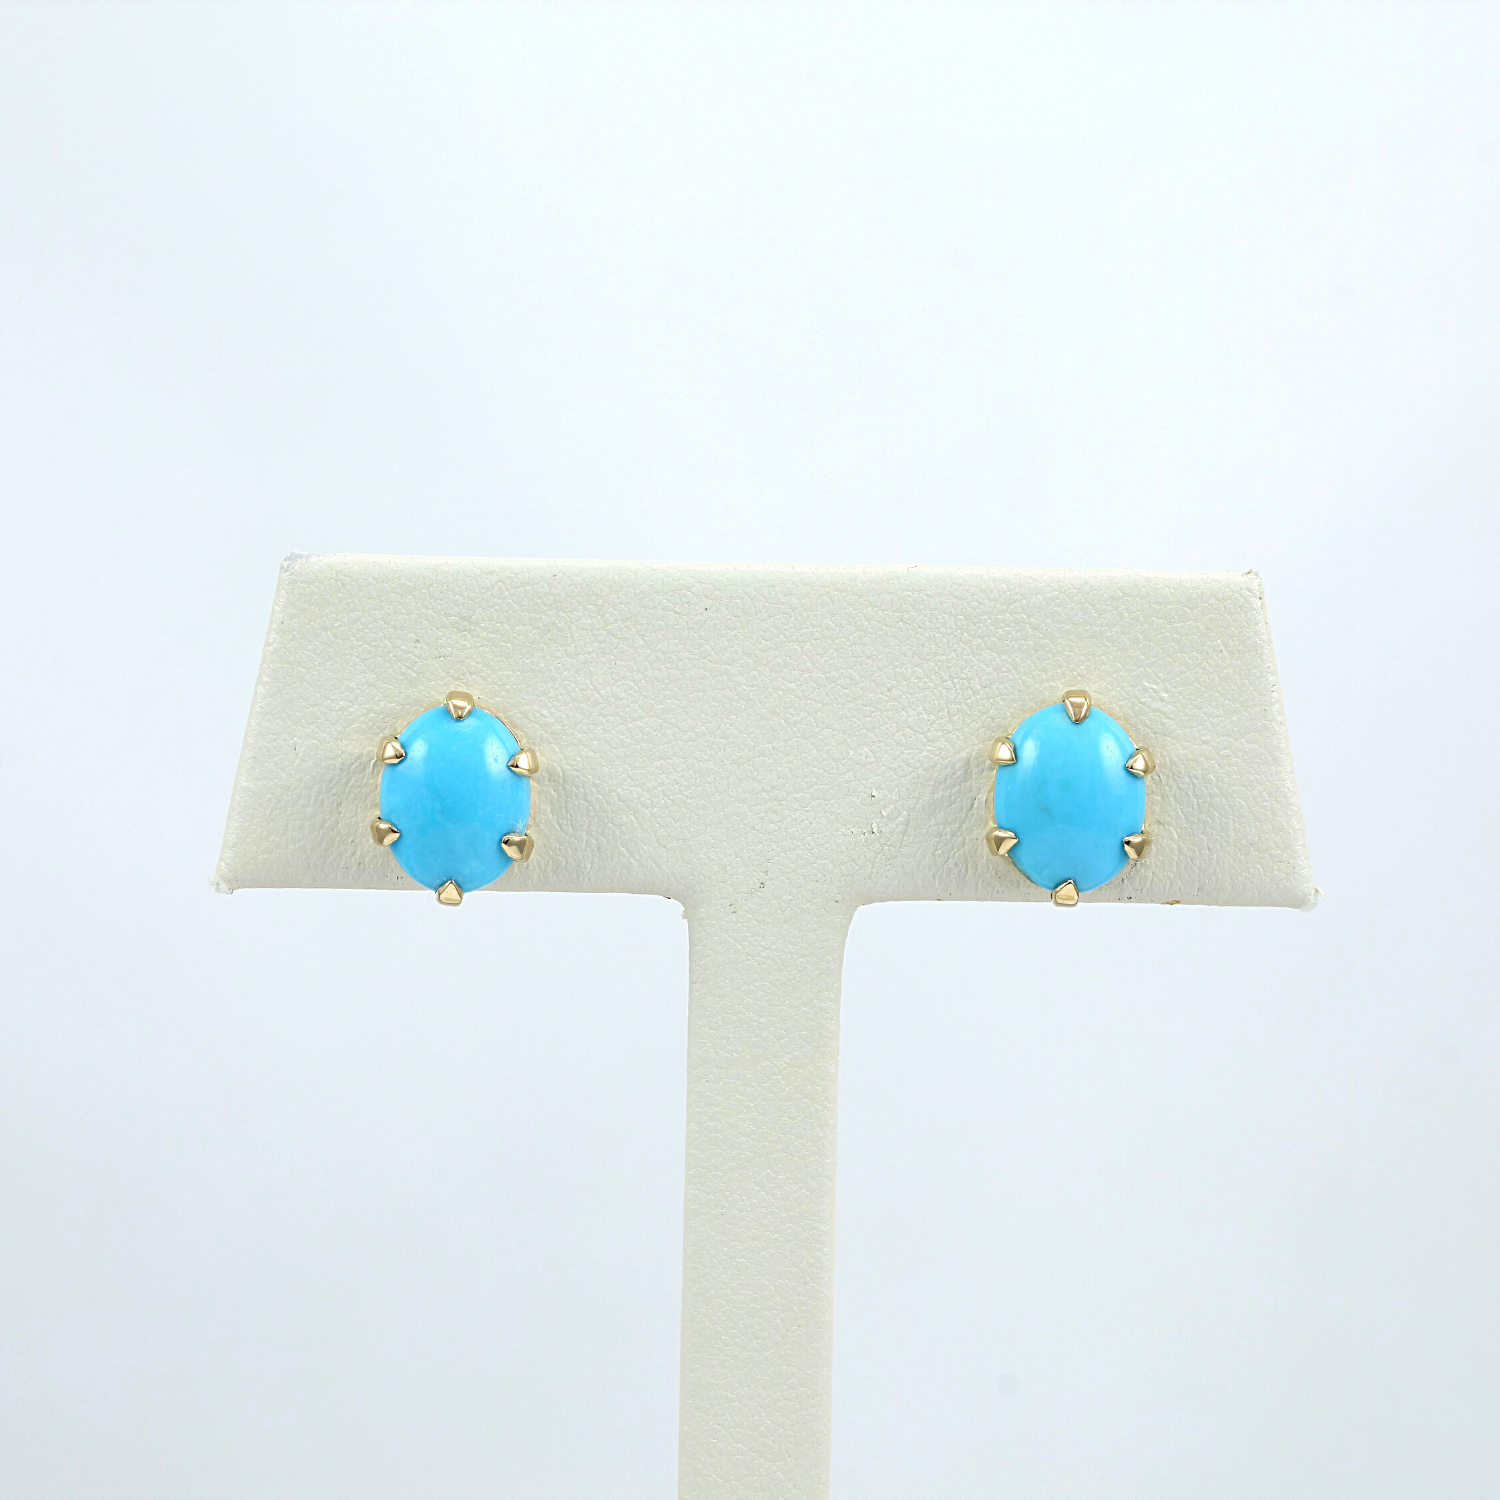 Exclusively by Nina 18K Yellow Gold 6-Prong Oval Turquoise Earrings